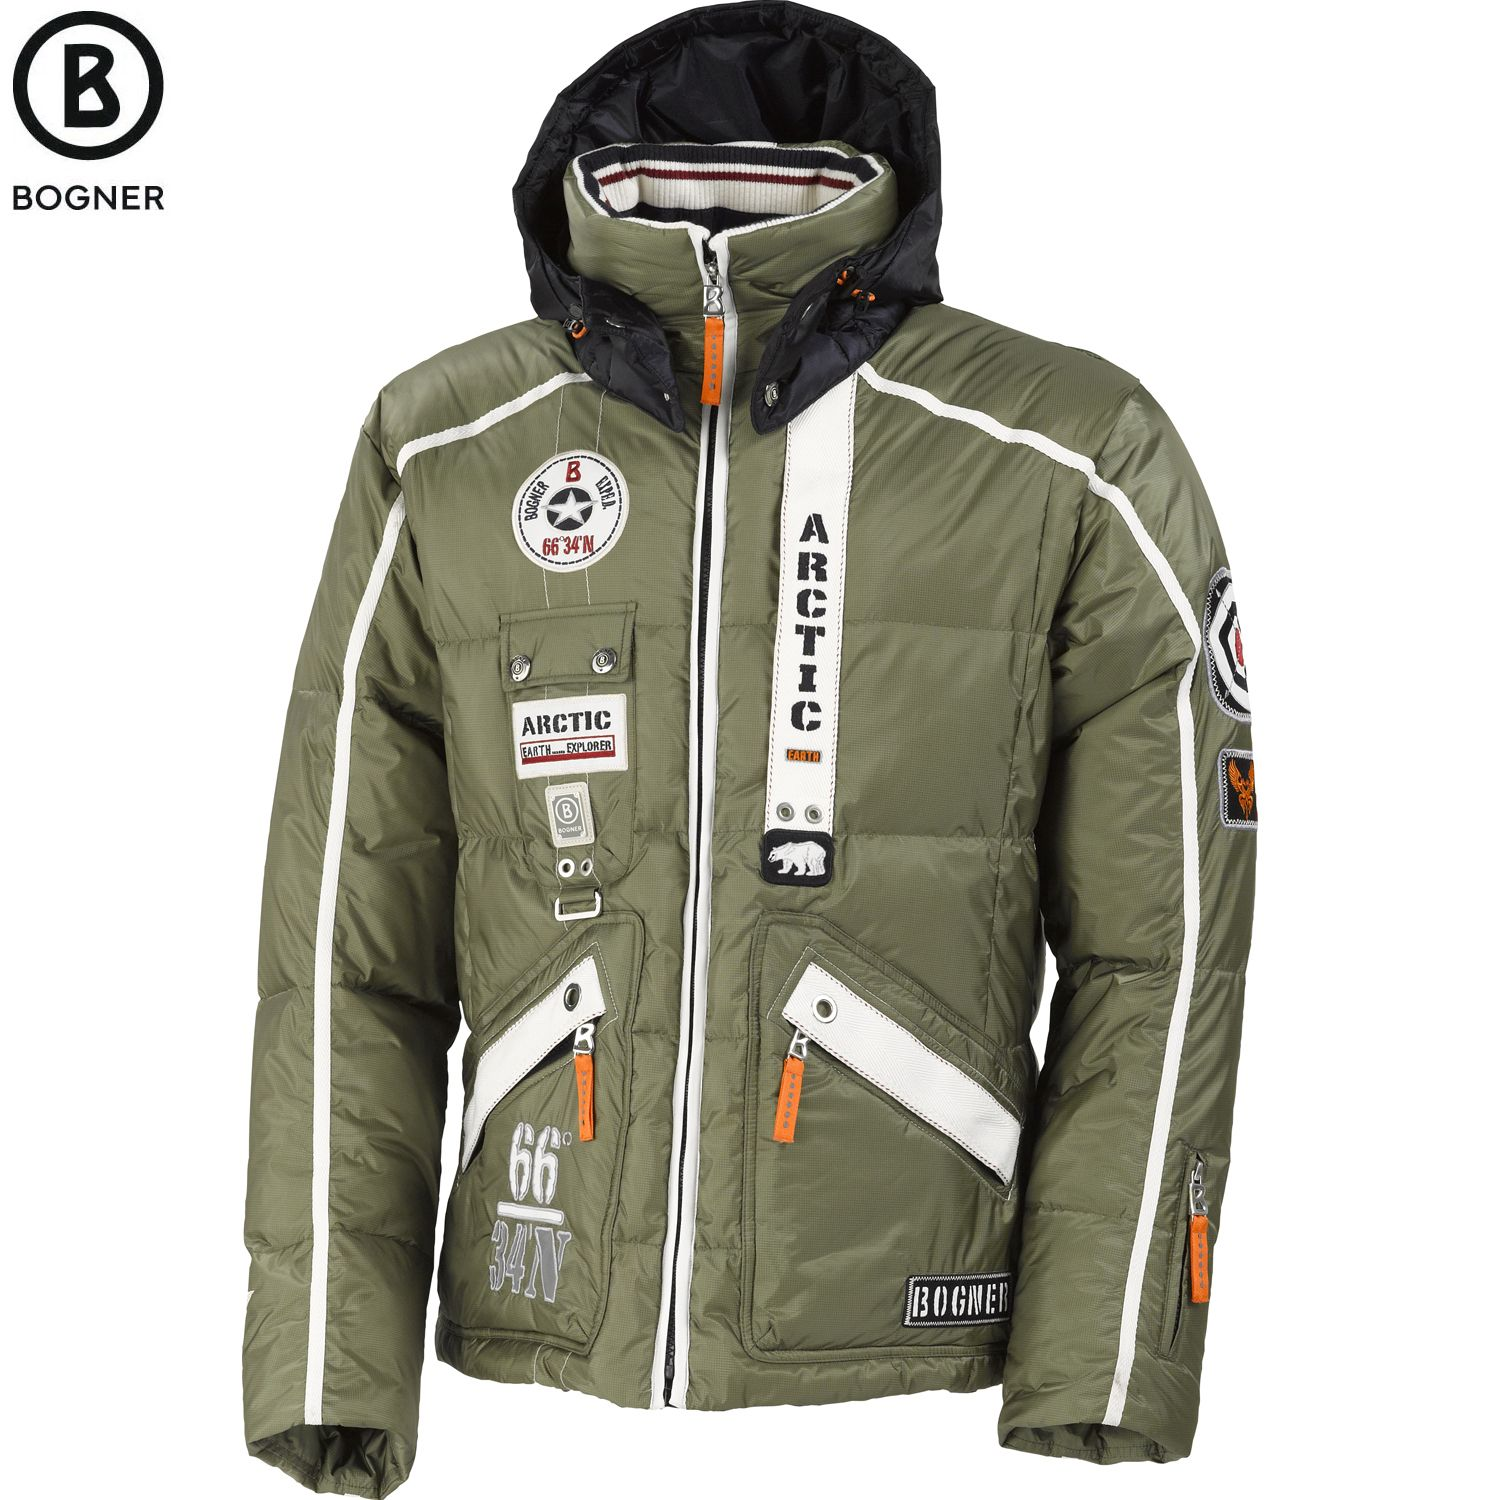 bogner dagur d down ski jacket men s 1399 00 men s fashion rh pinterest com